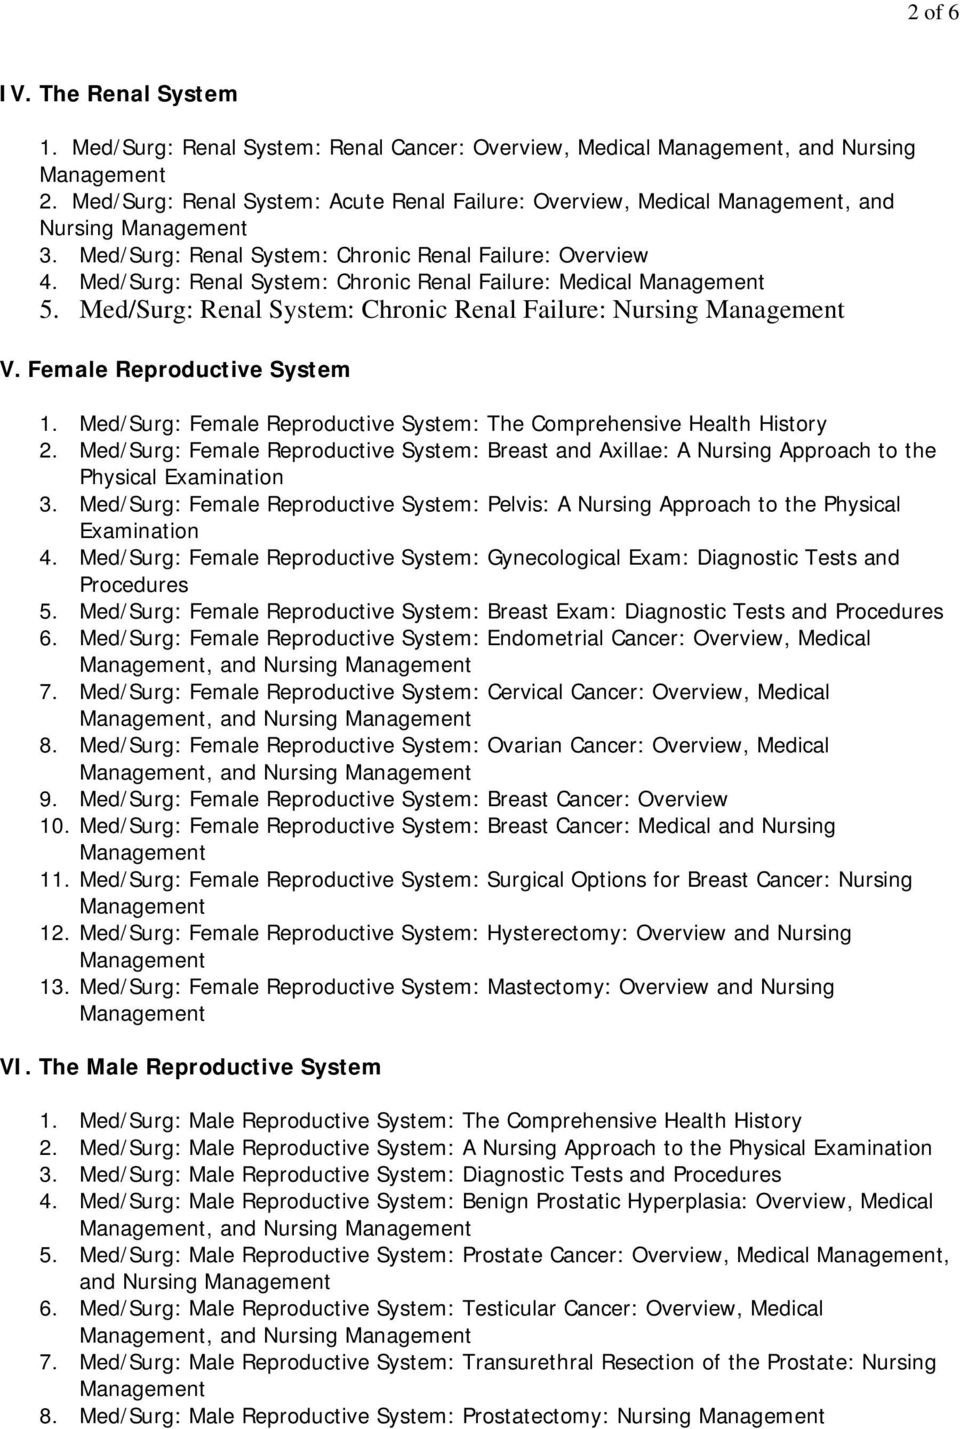 Female Reproductive System 1. Med/Surg: Female Reproductive System: The Comprehensive Health History 2. Med/Surg: Female Reproductive System: Breast and Axillae: A Nursing Approach to the Physical 3.